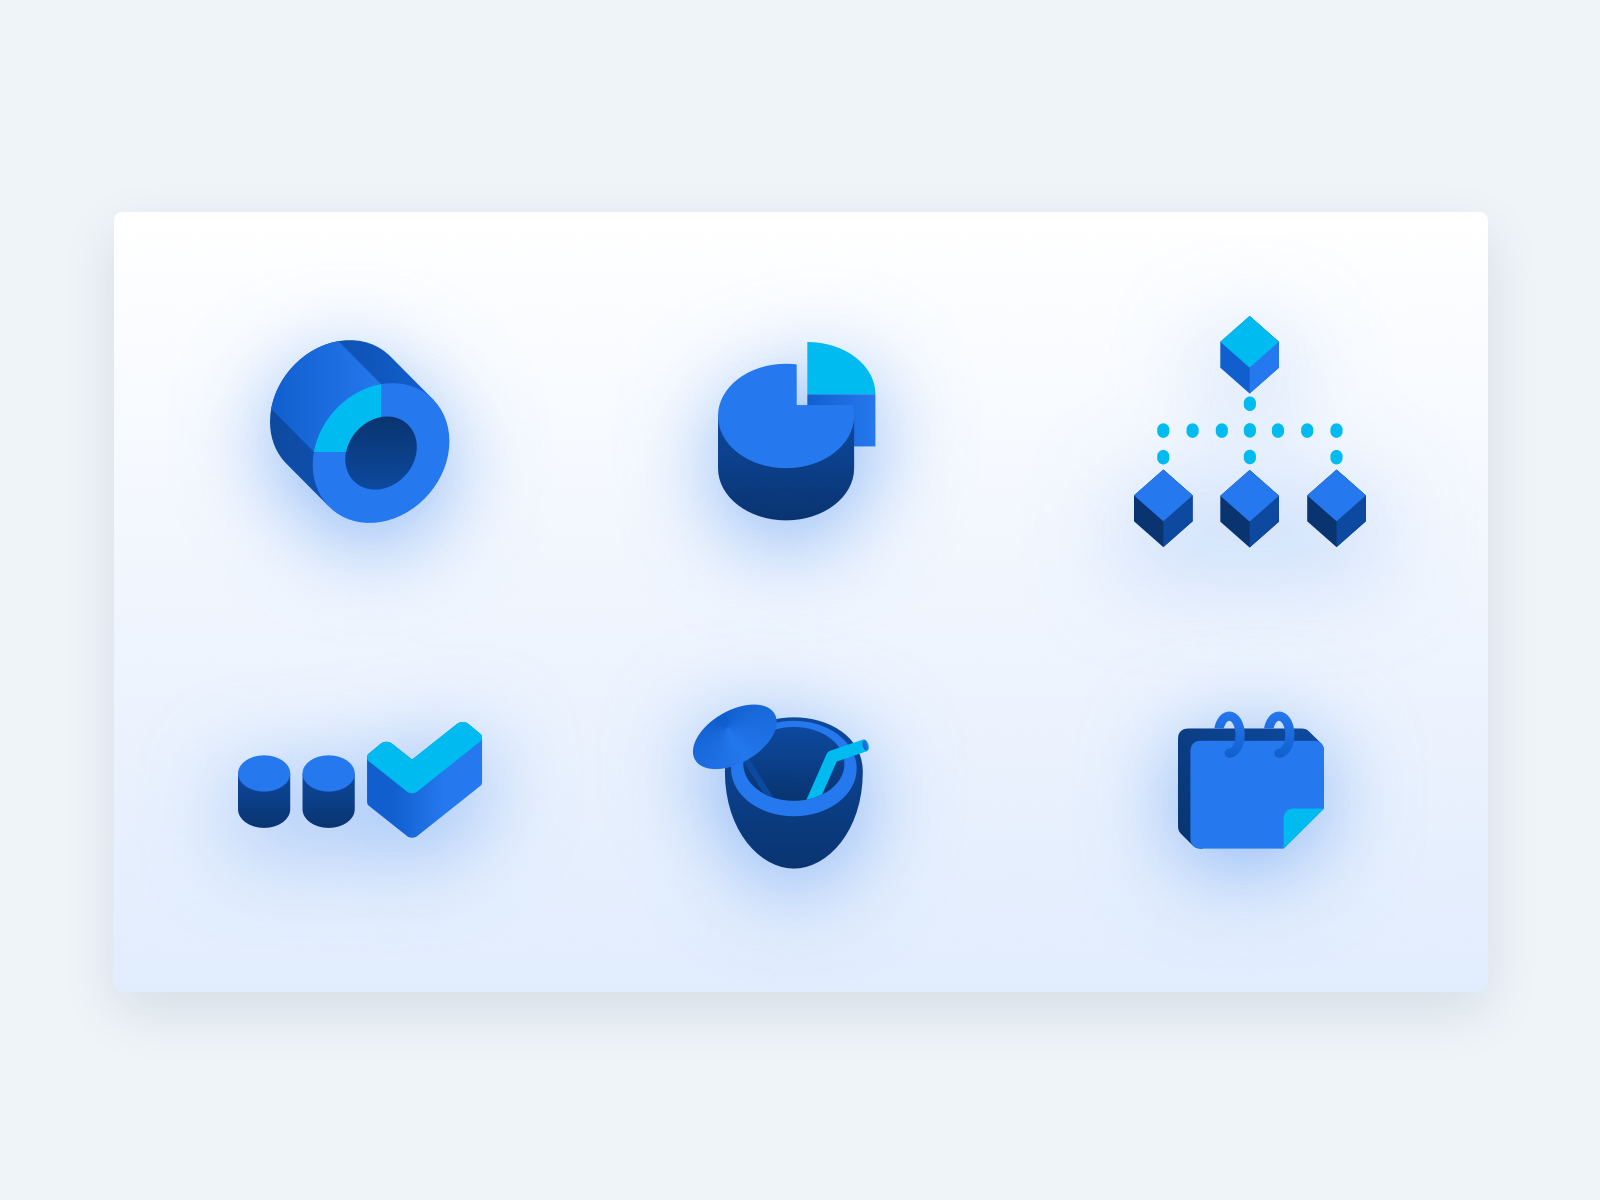 Quotapath icons